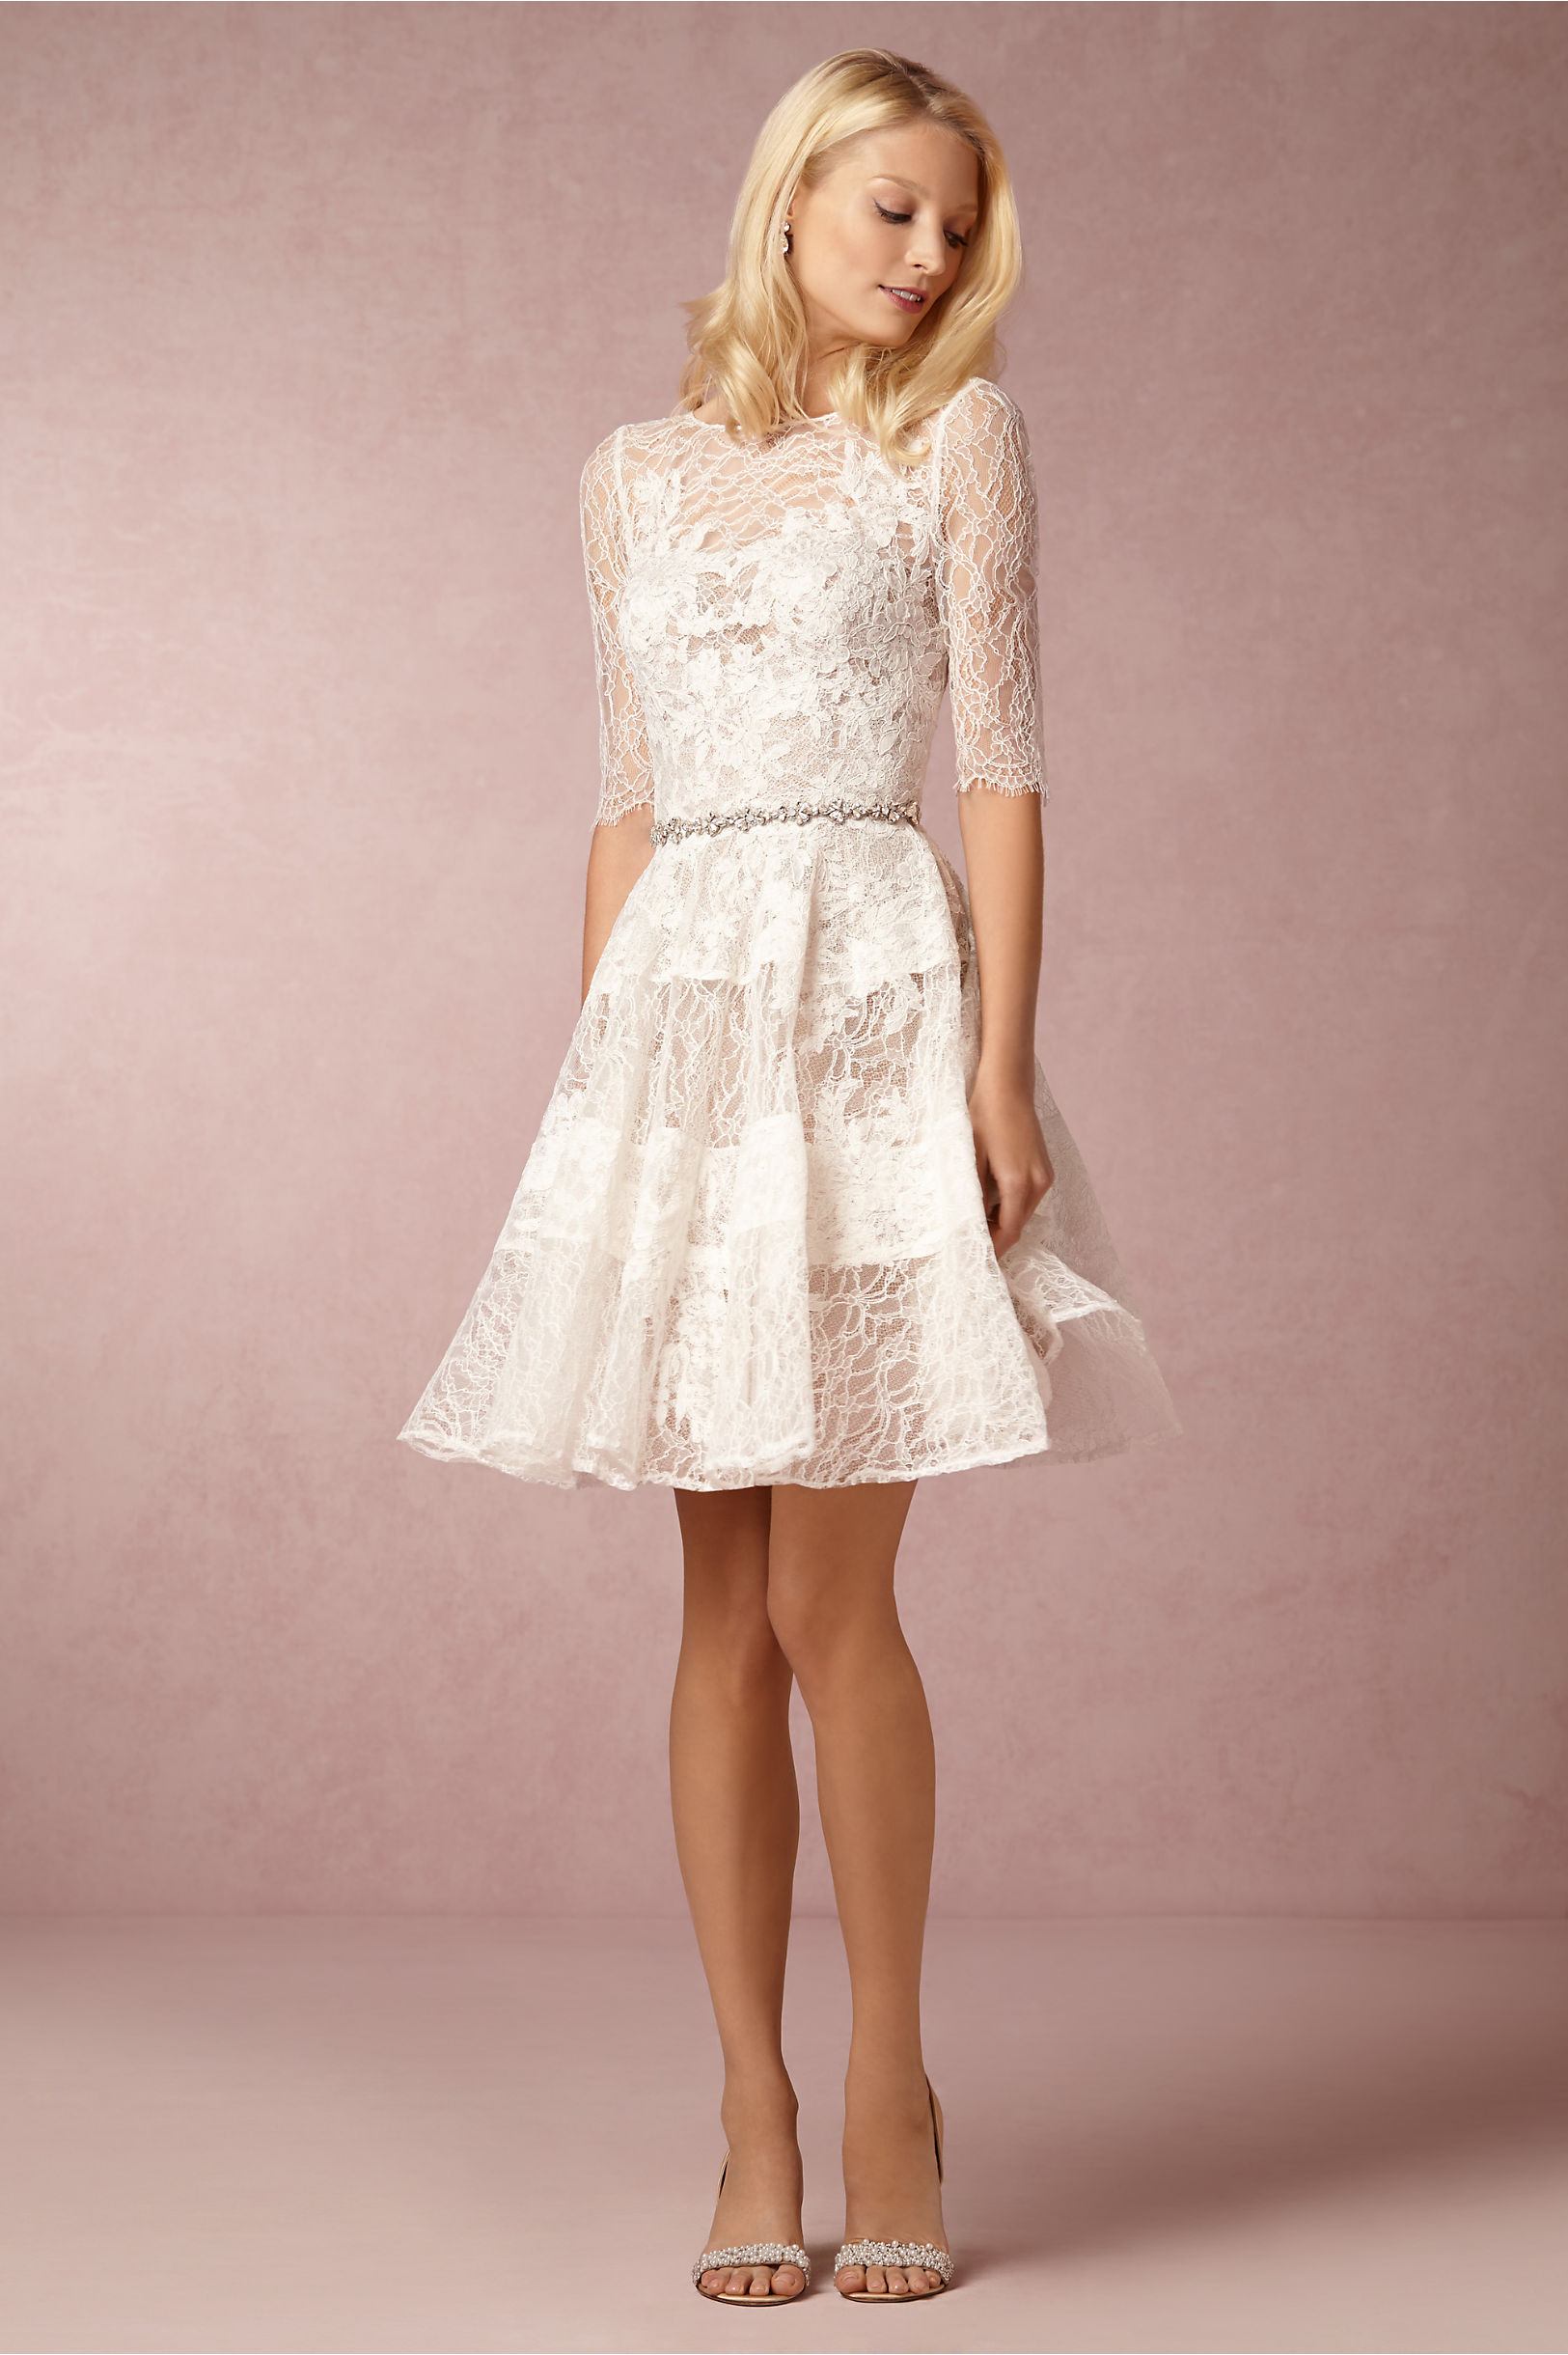 10 reasons to love short wedding dresses for Wedding dress for a short bride